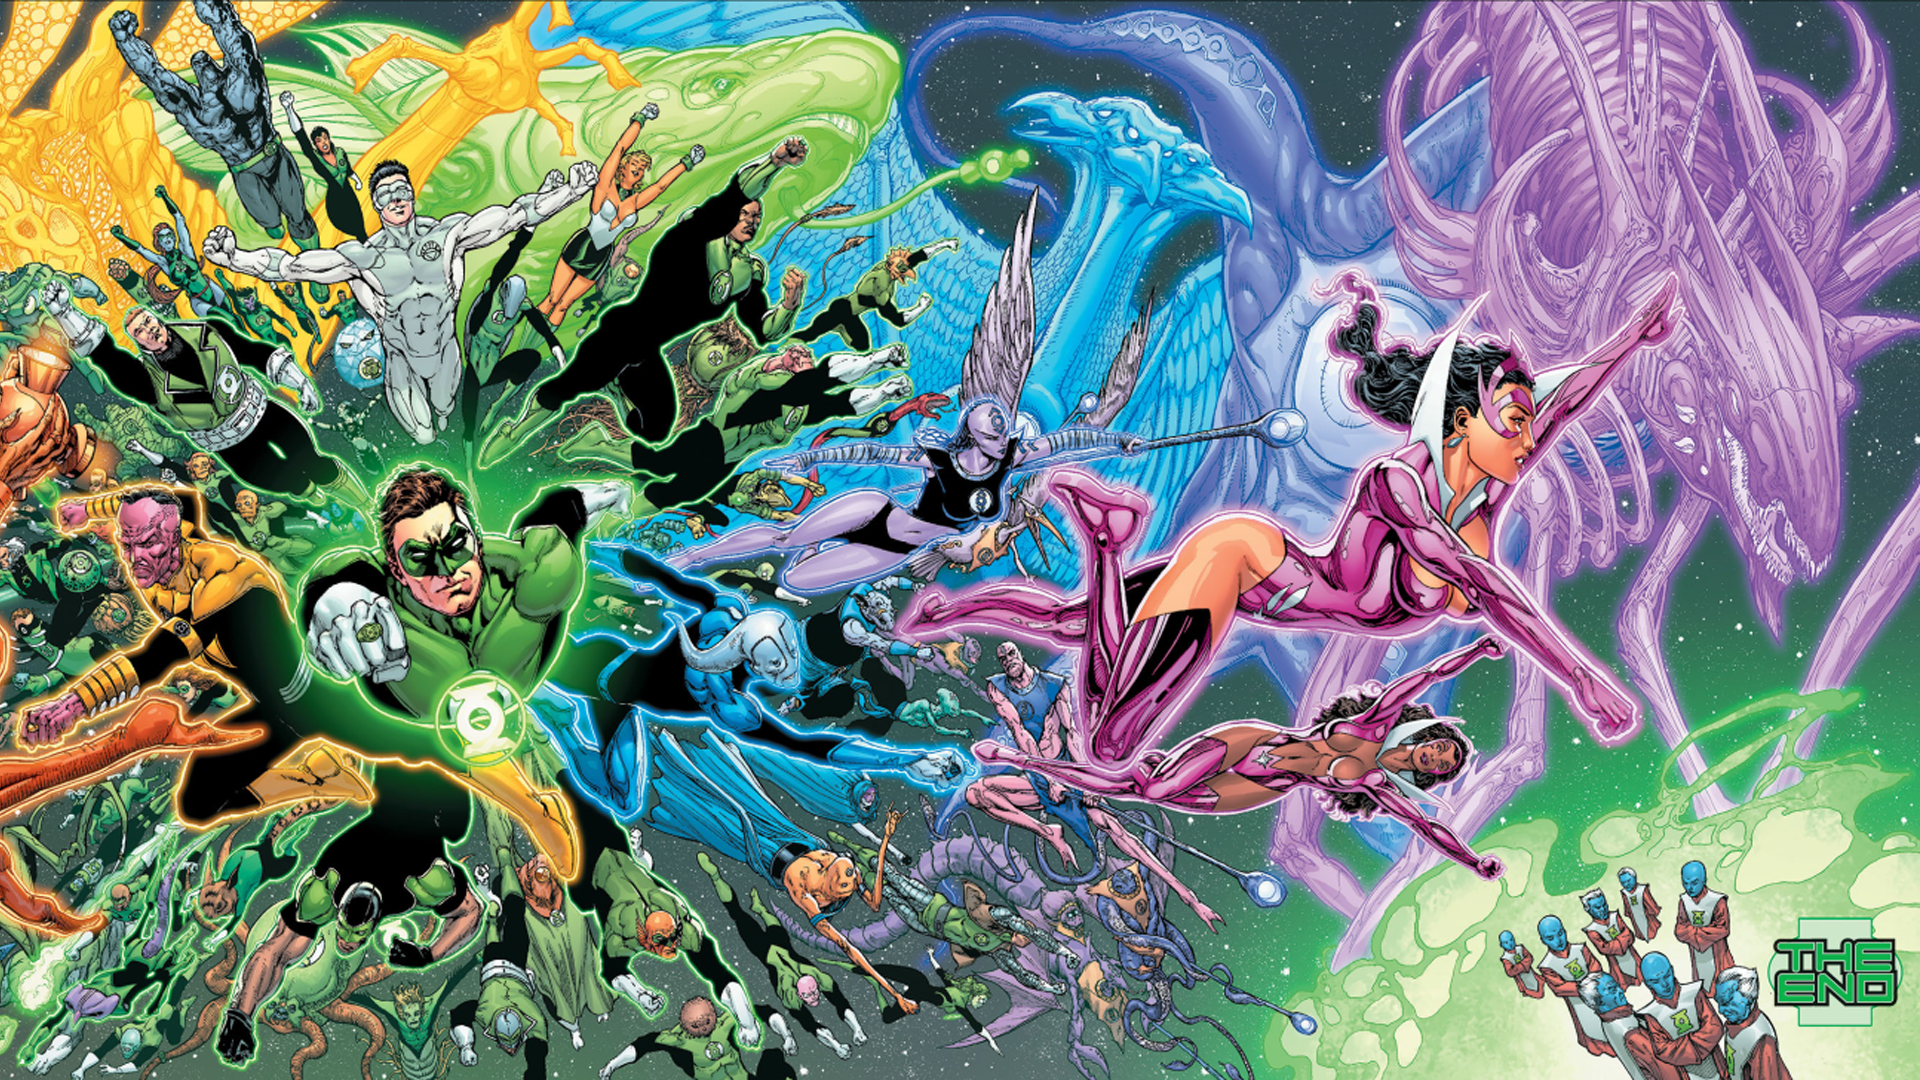 Green Lantern wallpaper 17991 1920x1080